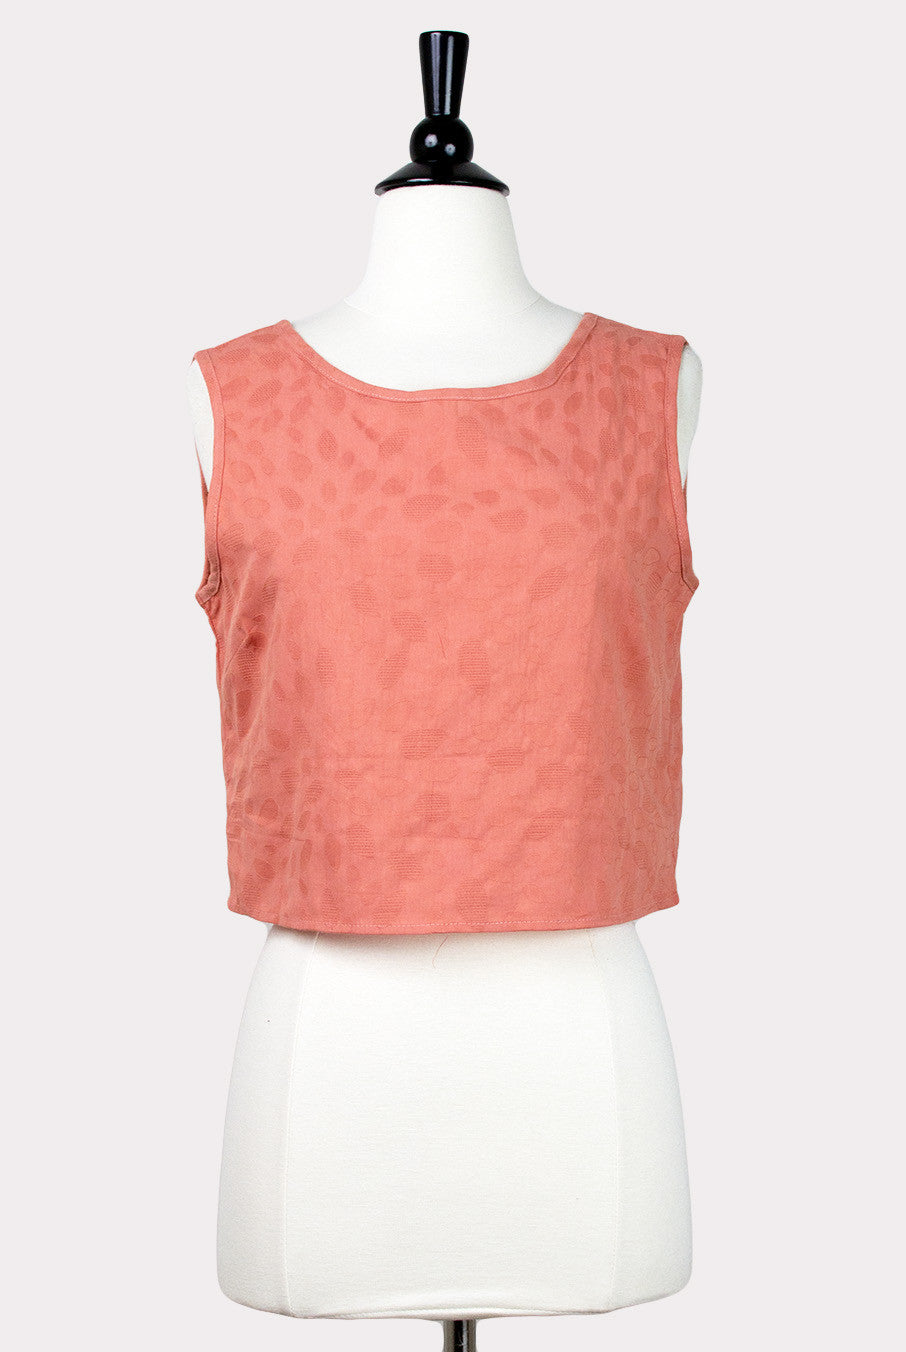 e4f0d7362e917c PepaLoves Anastasia Coral Bow Back Crop Top - Hourglass Boutique - 1 ...